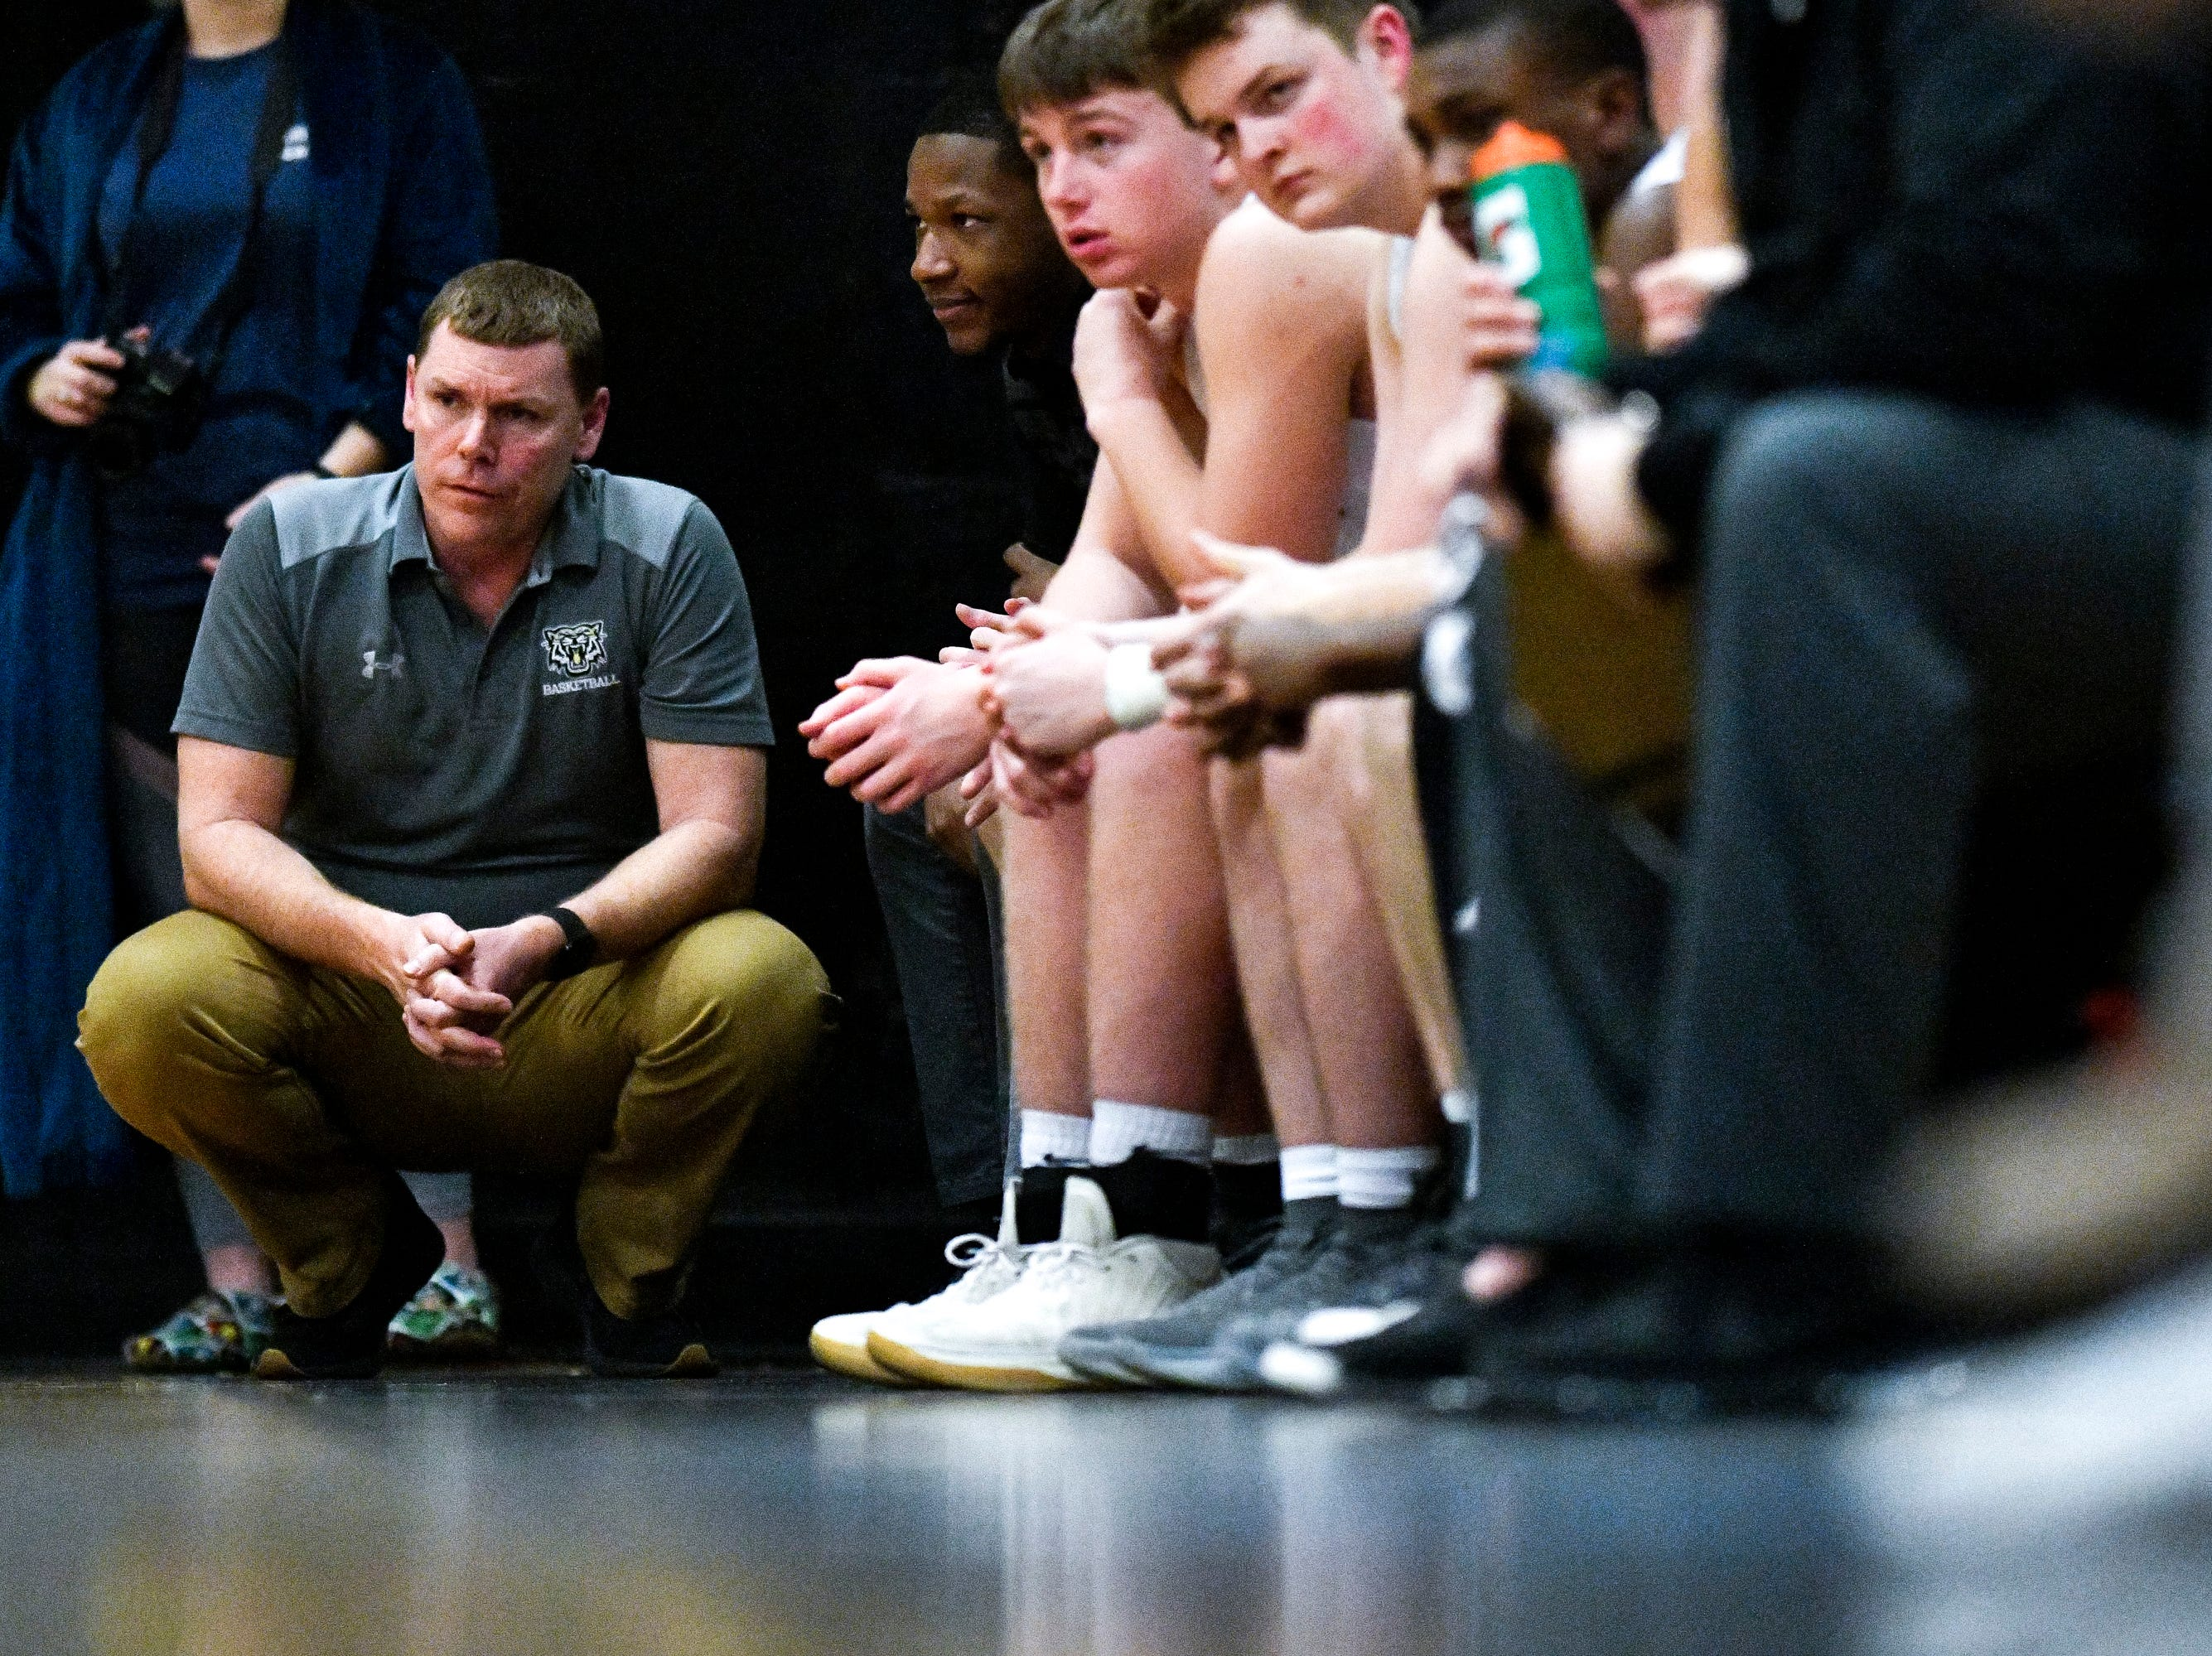 Central Magnet head coach Doug Worsley works with his team against Marshall County during the first half at Central Magnet School in Murfreesboro, Tenn., Friday, Jan. 11, 2019.